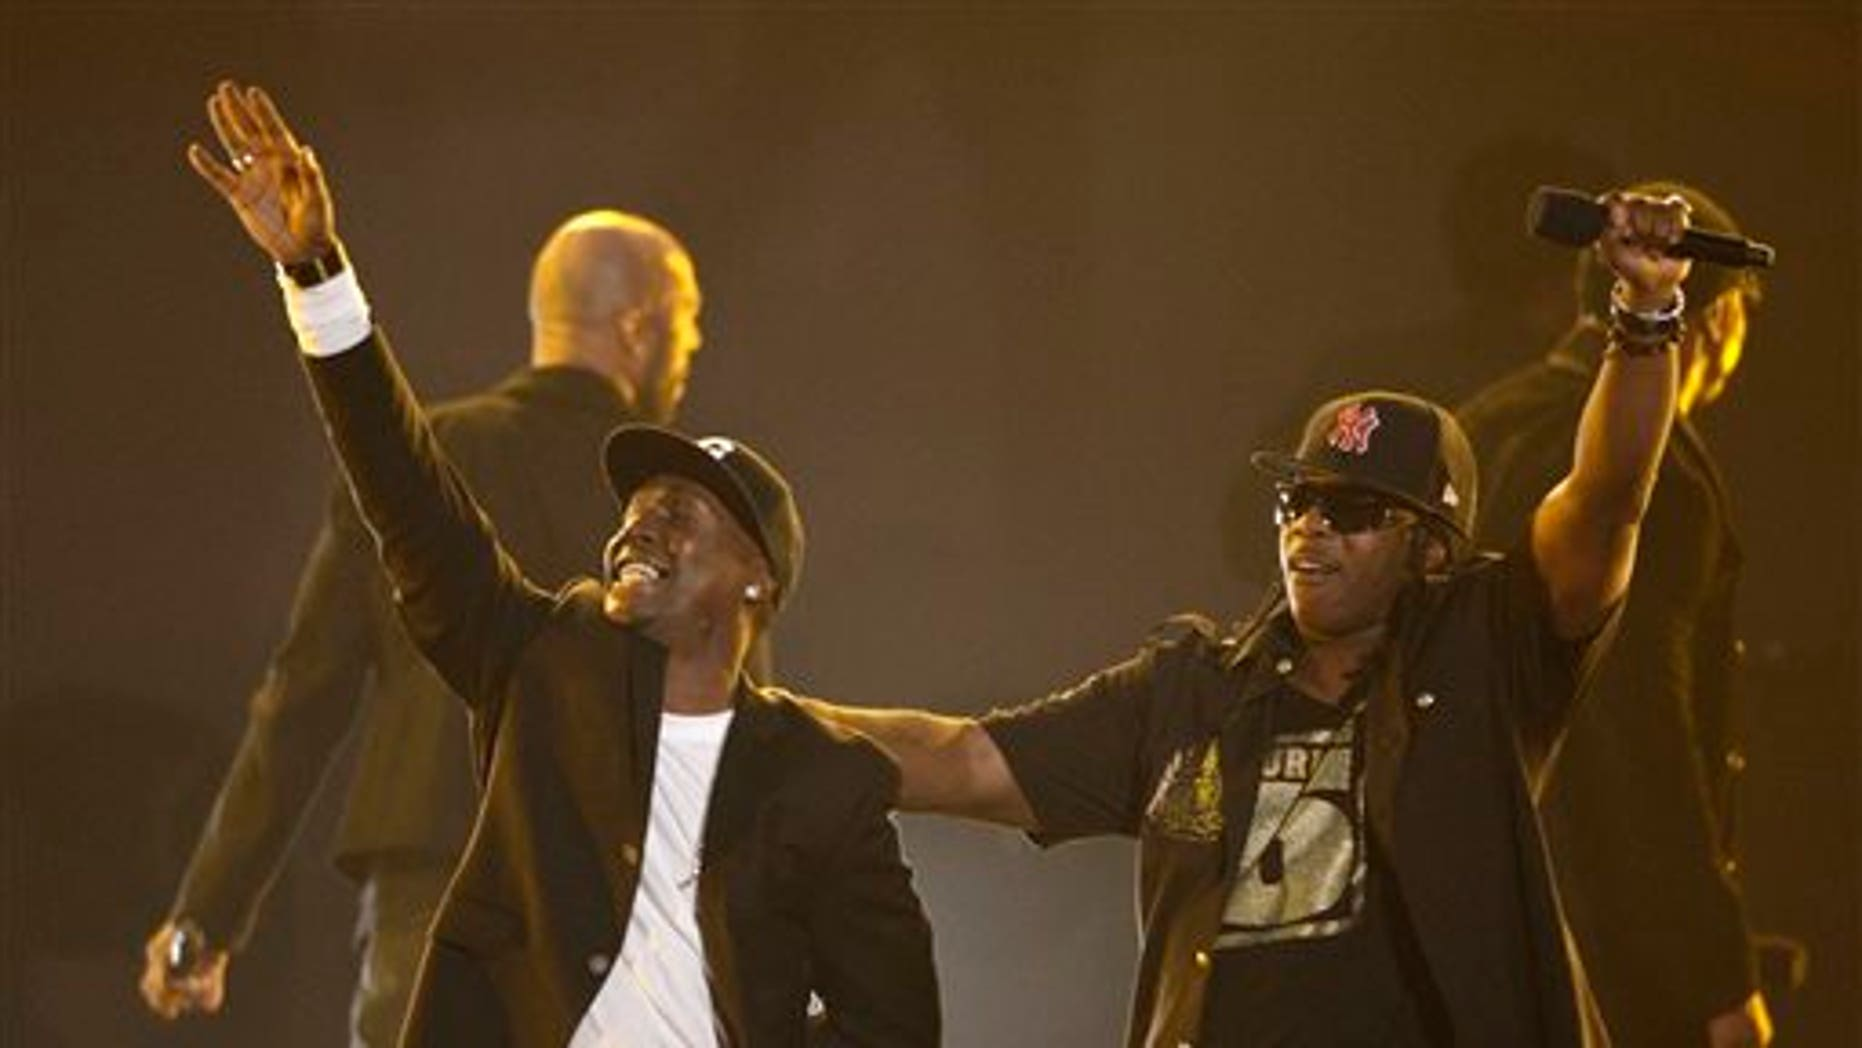 FILE - In this Nov. 30, 2011, file photo, Grandmaster Flash, left, and Scorpio perform at the Grammy Nominations Concert in Los Angeles. New York City police have launched an investigation after hip-hop heavyweight Grandmaster Flash's car was given away at a Manhattan parking garage. A New York Police Department spokesman says Friday, July 24, 2015, that the incident happened July 16 around 7:30 p.m. (AP Photo/Matt Sayles, File)